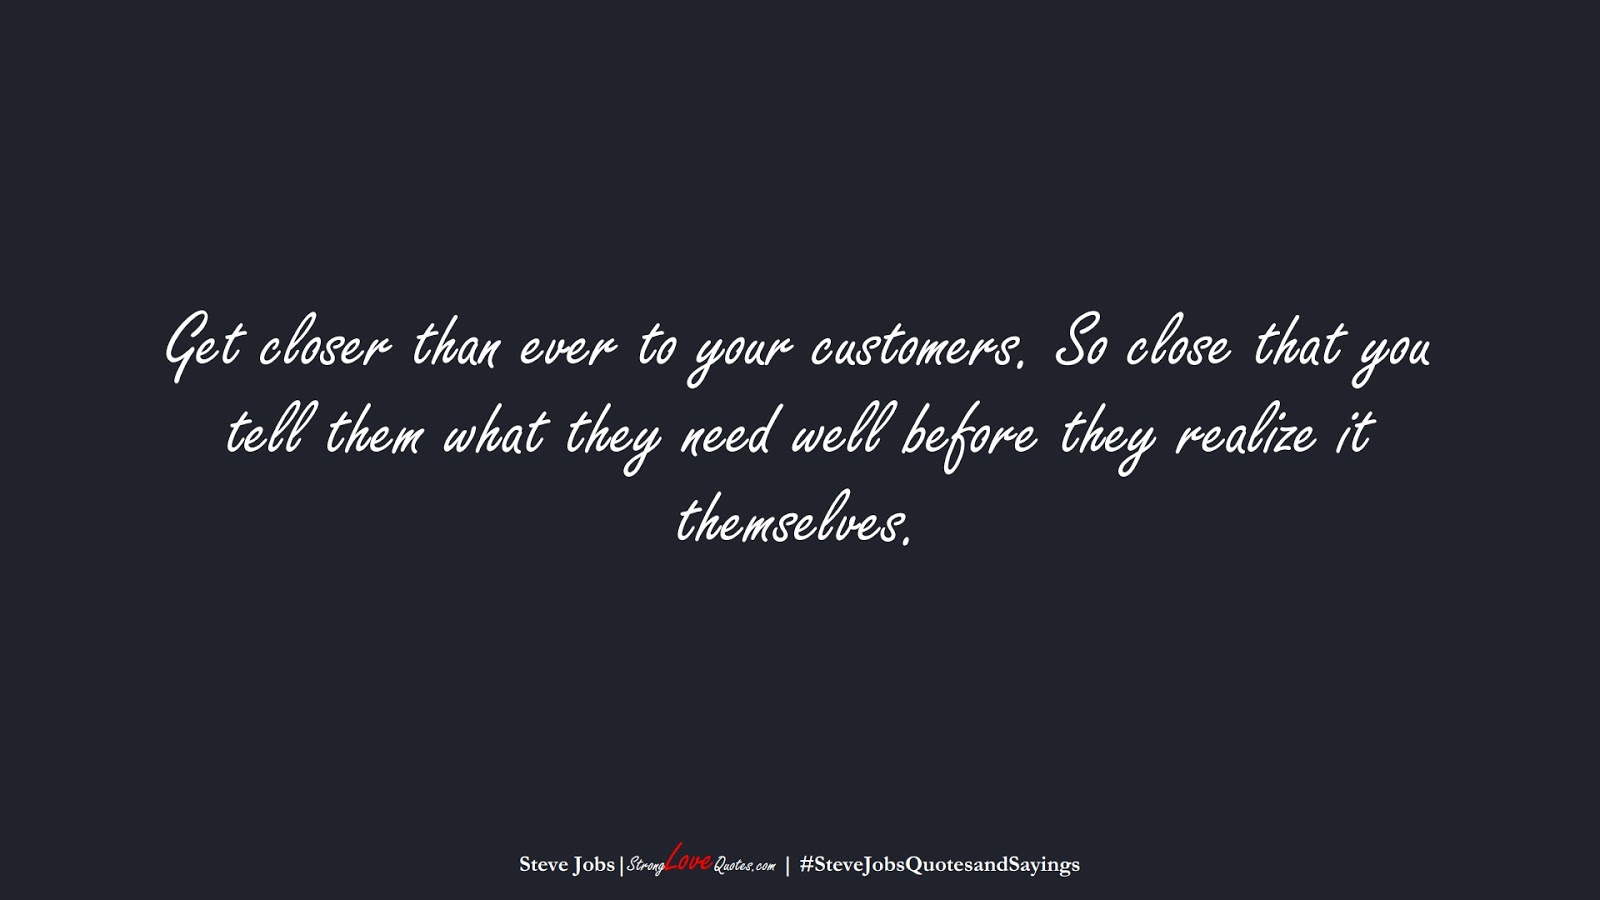 Get closer than ever to your customers. So close that you tell them what they need well before they realize it themselves. (Steve Jobs);  #SteveJobsQuotesandSayings